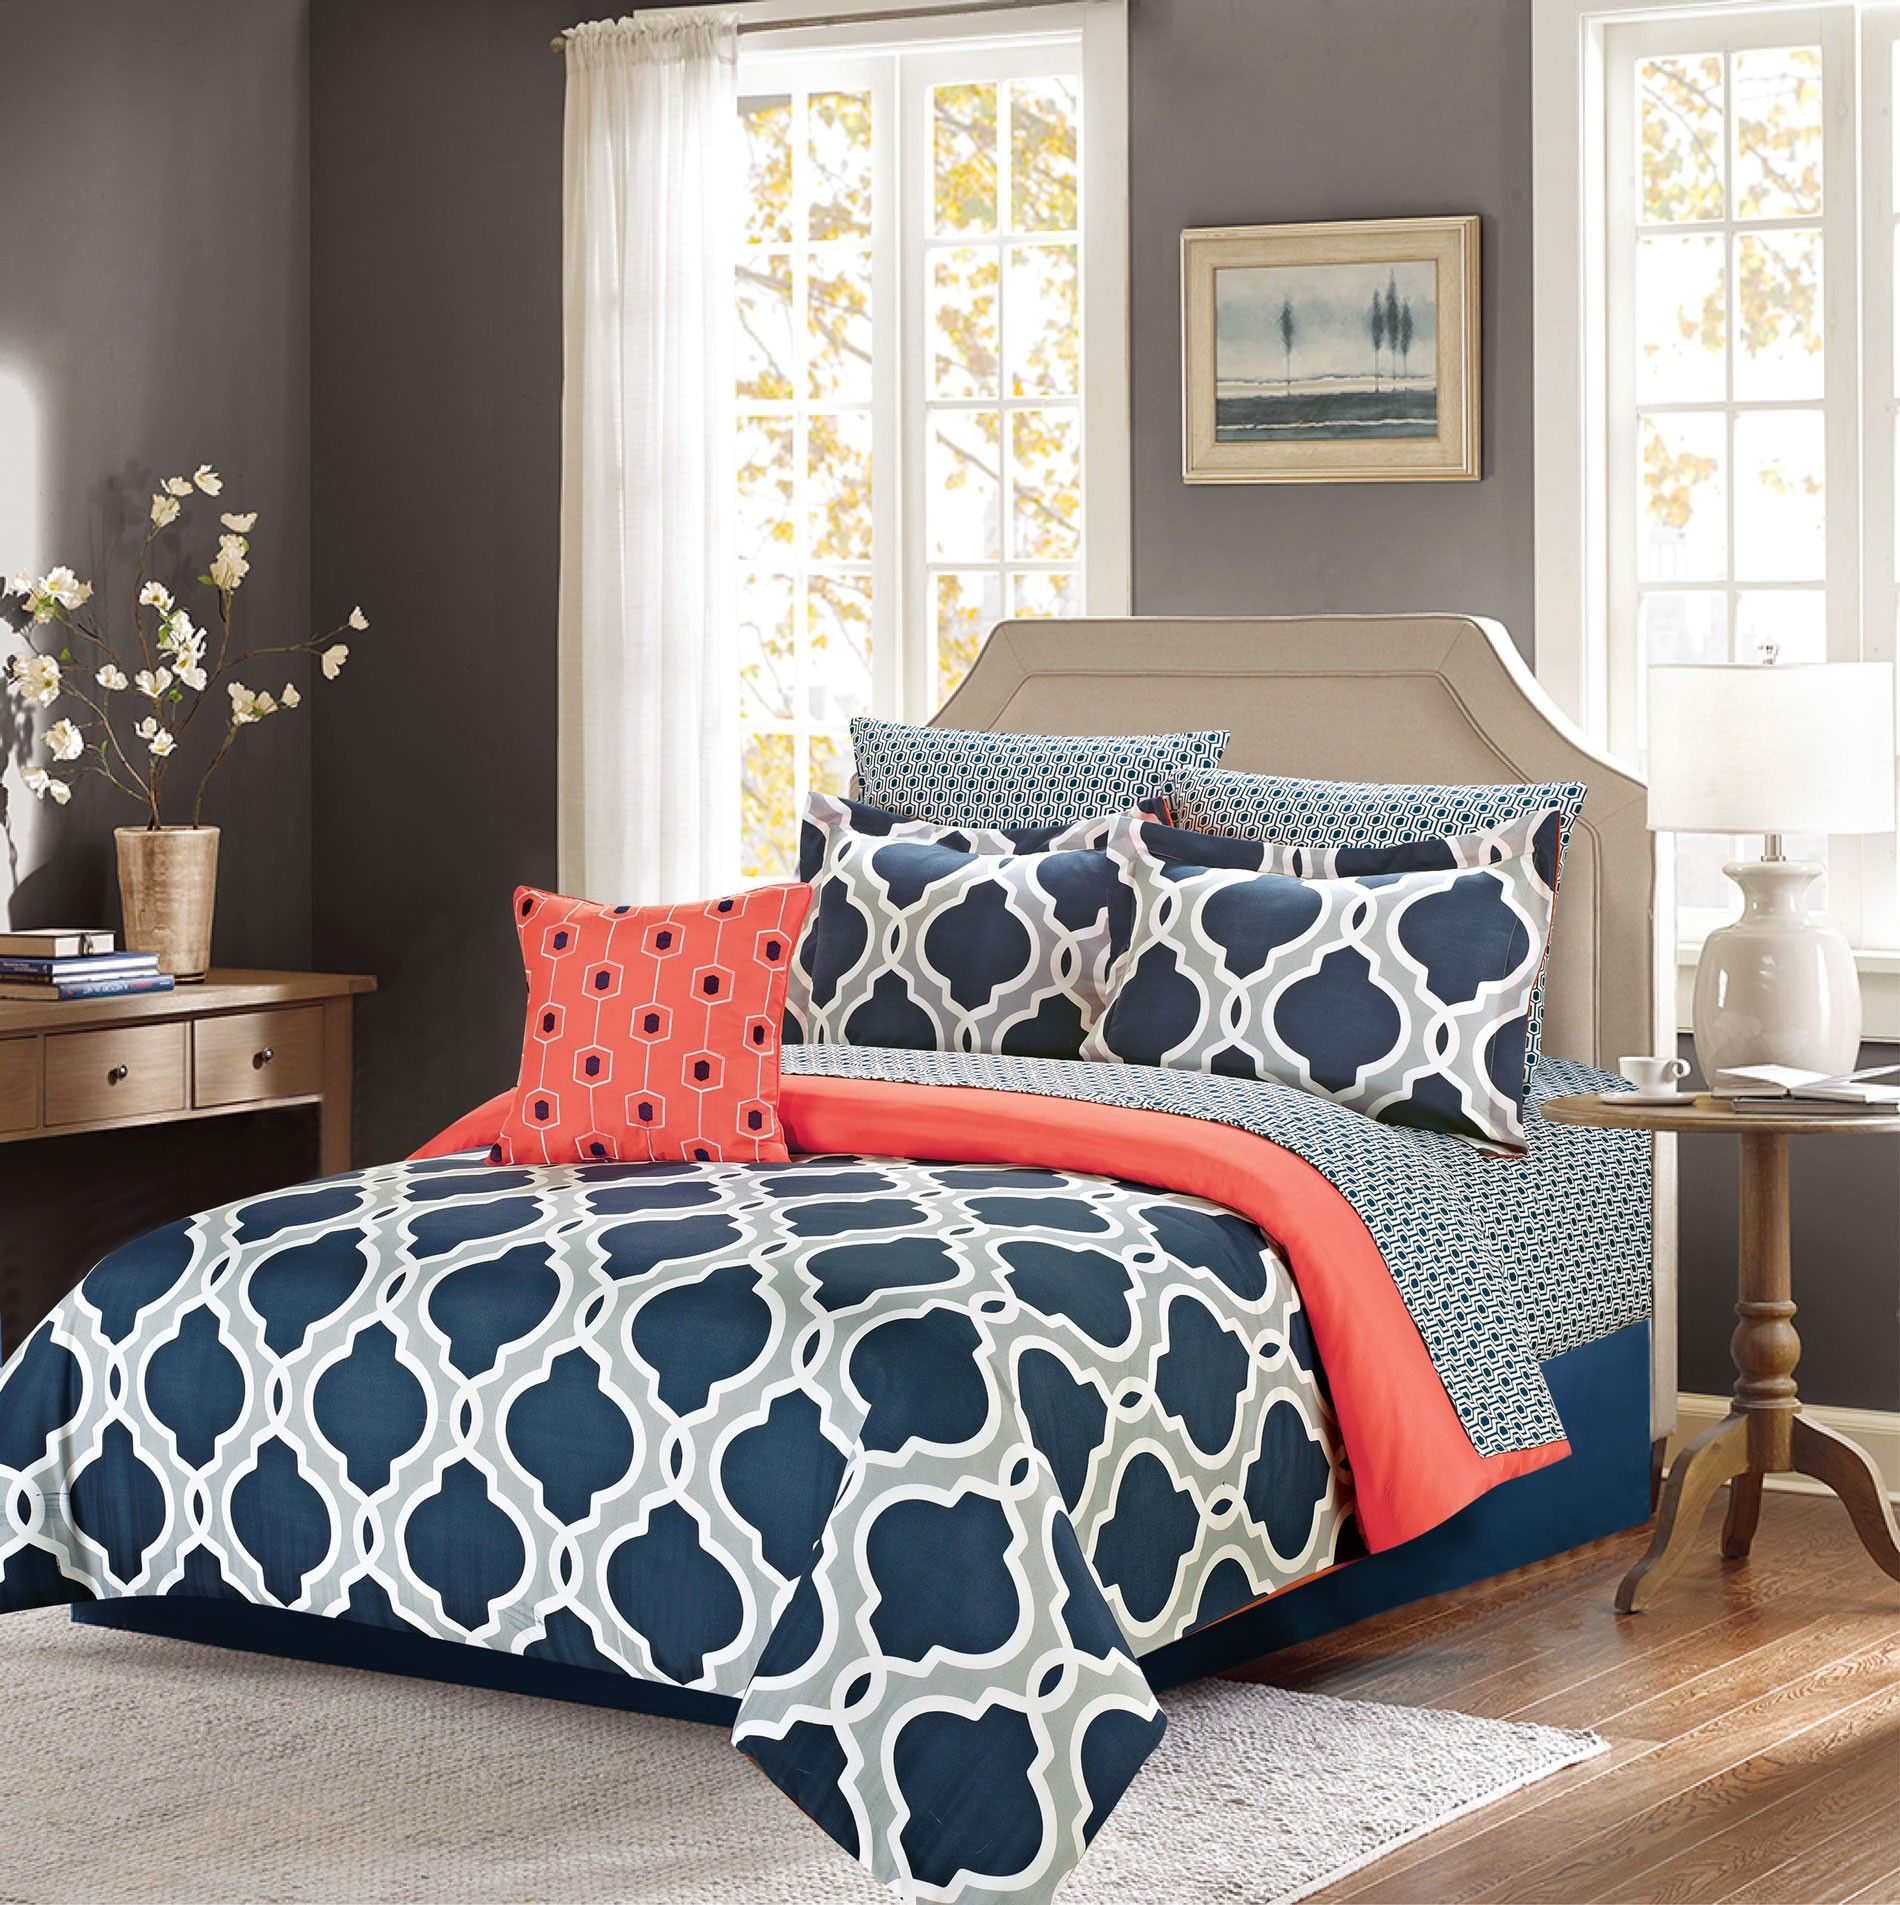 crest home ellen westbury king comforter bedding set with sheets  - crest home ellen westbury king comforter bedding set with sheets navy blueand grey quatrefoil  pc bed in a bag